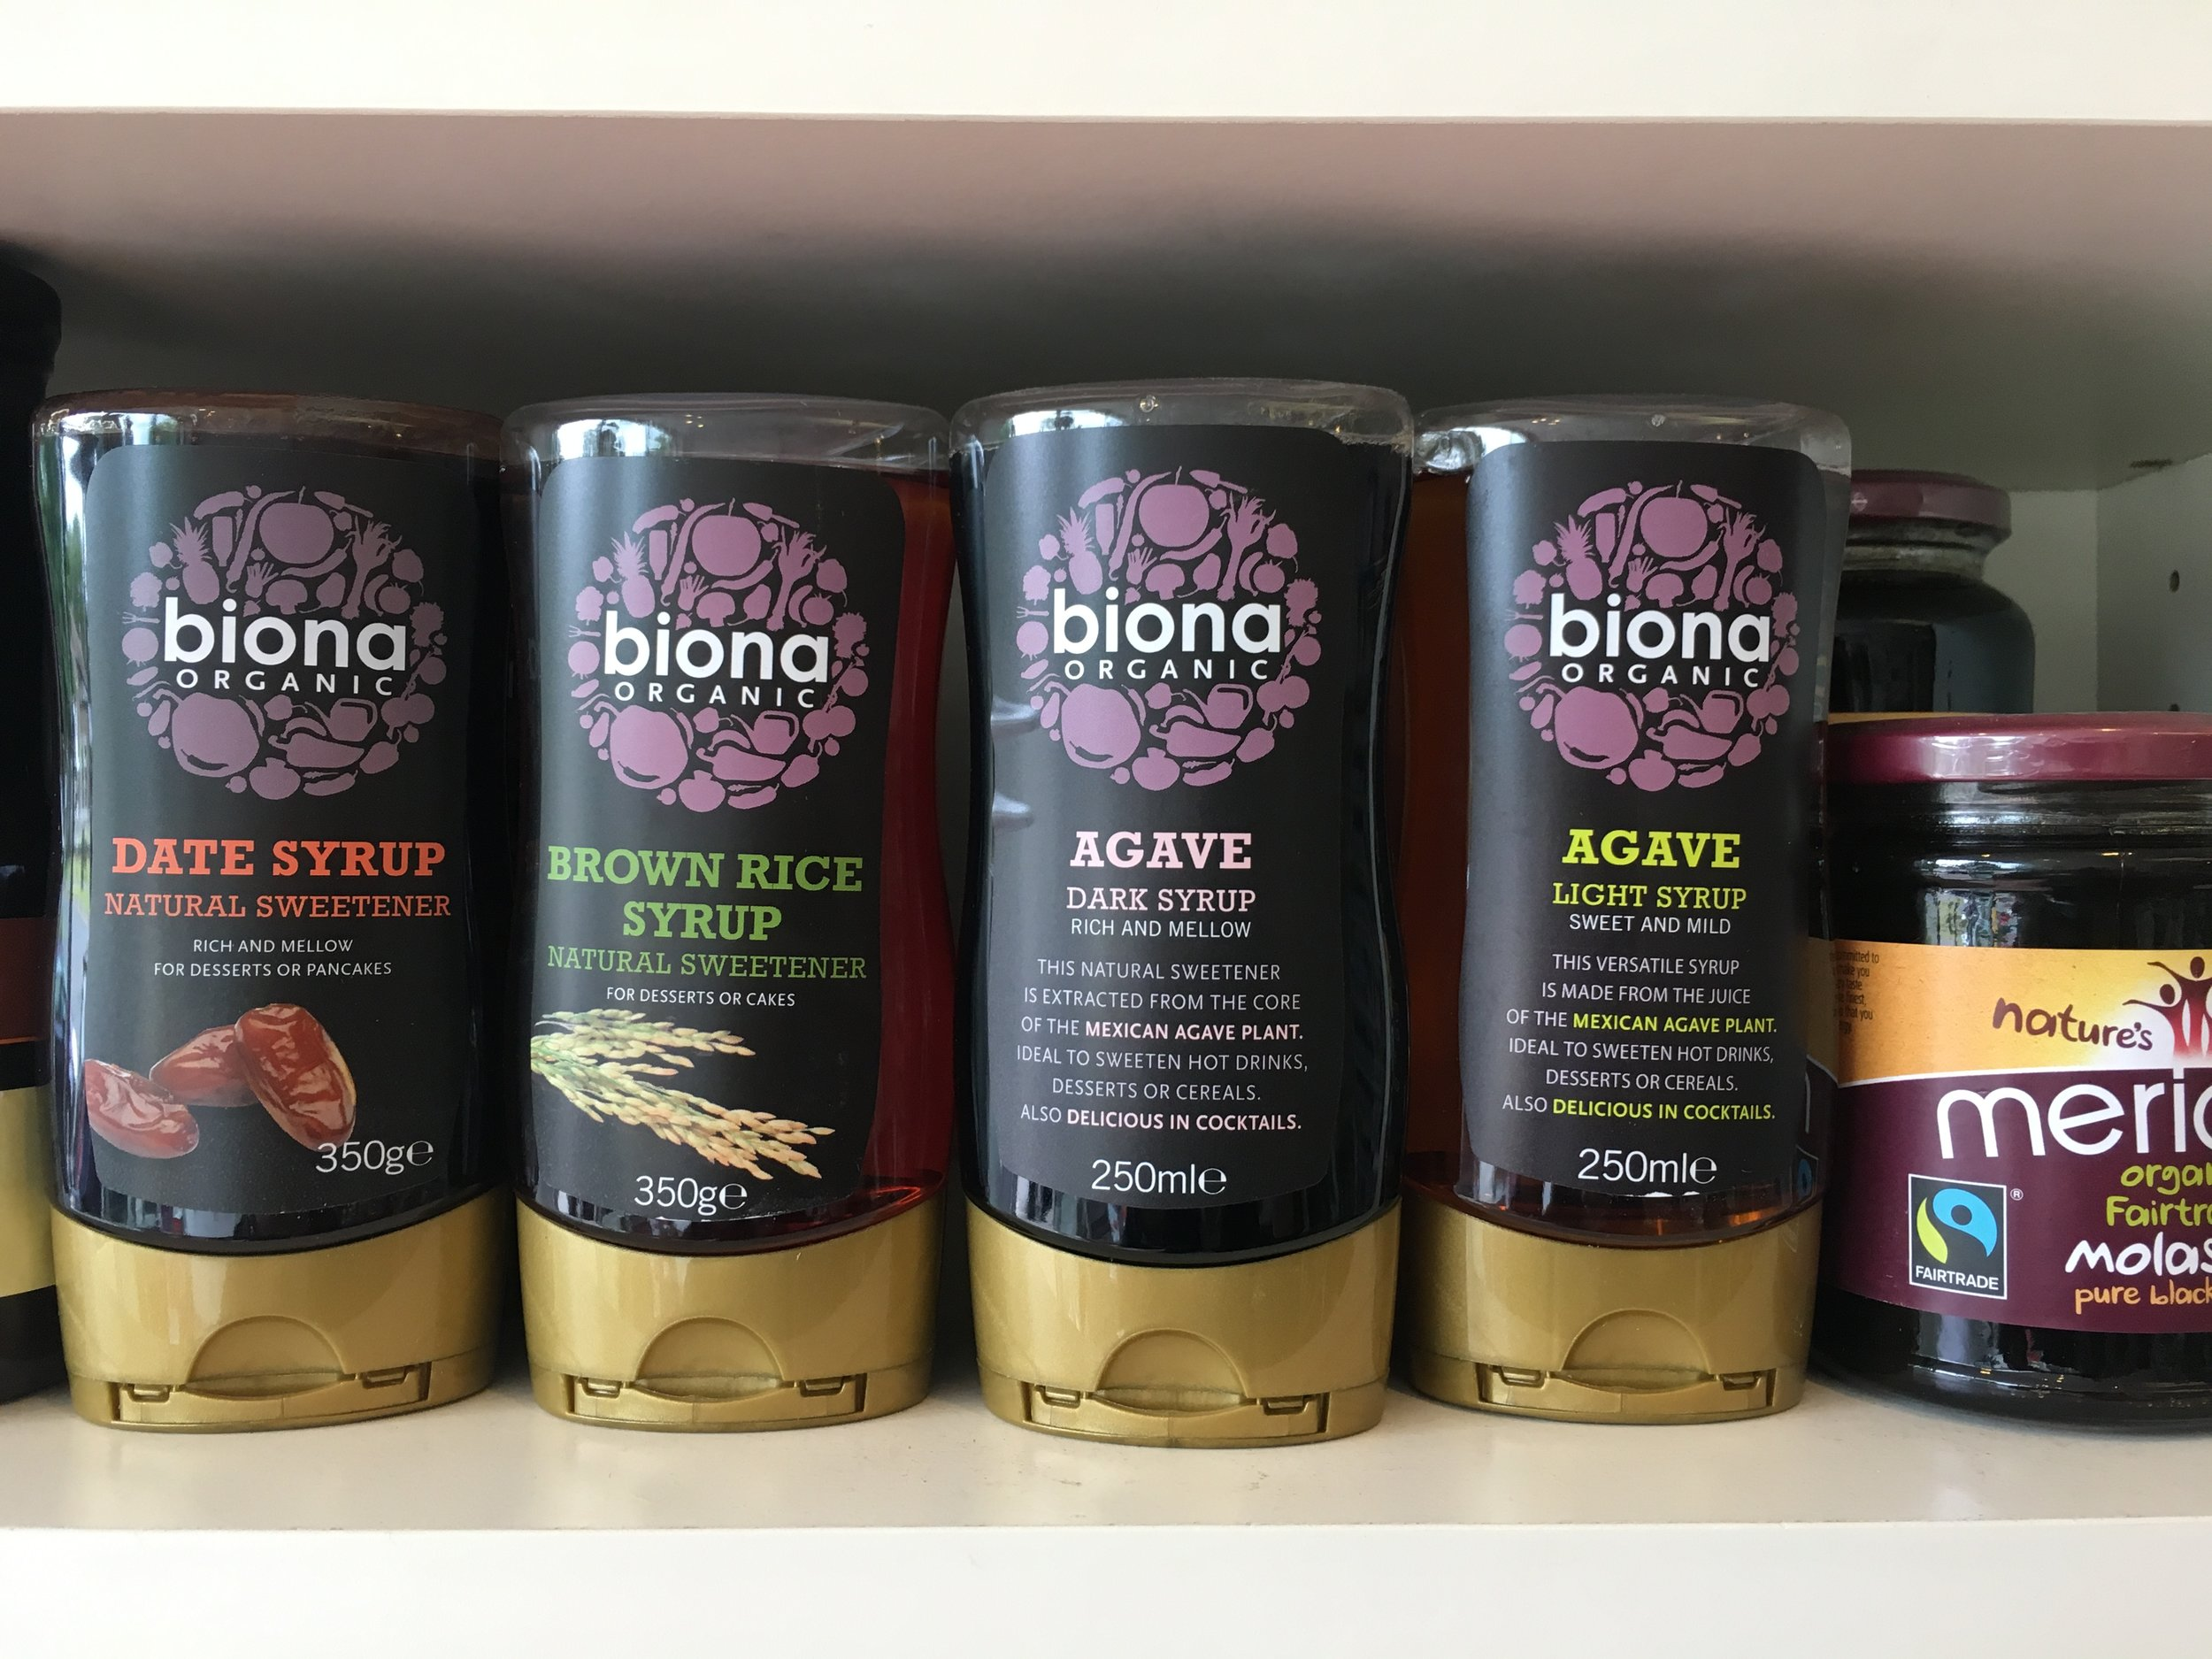 GREAT RANGE OF ORGANIC PRODUCTS